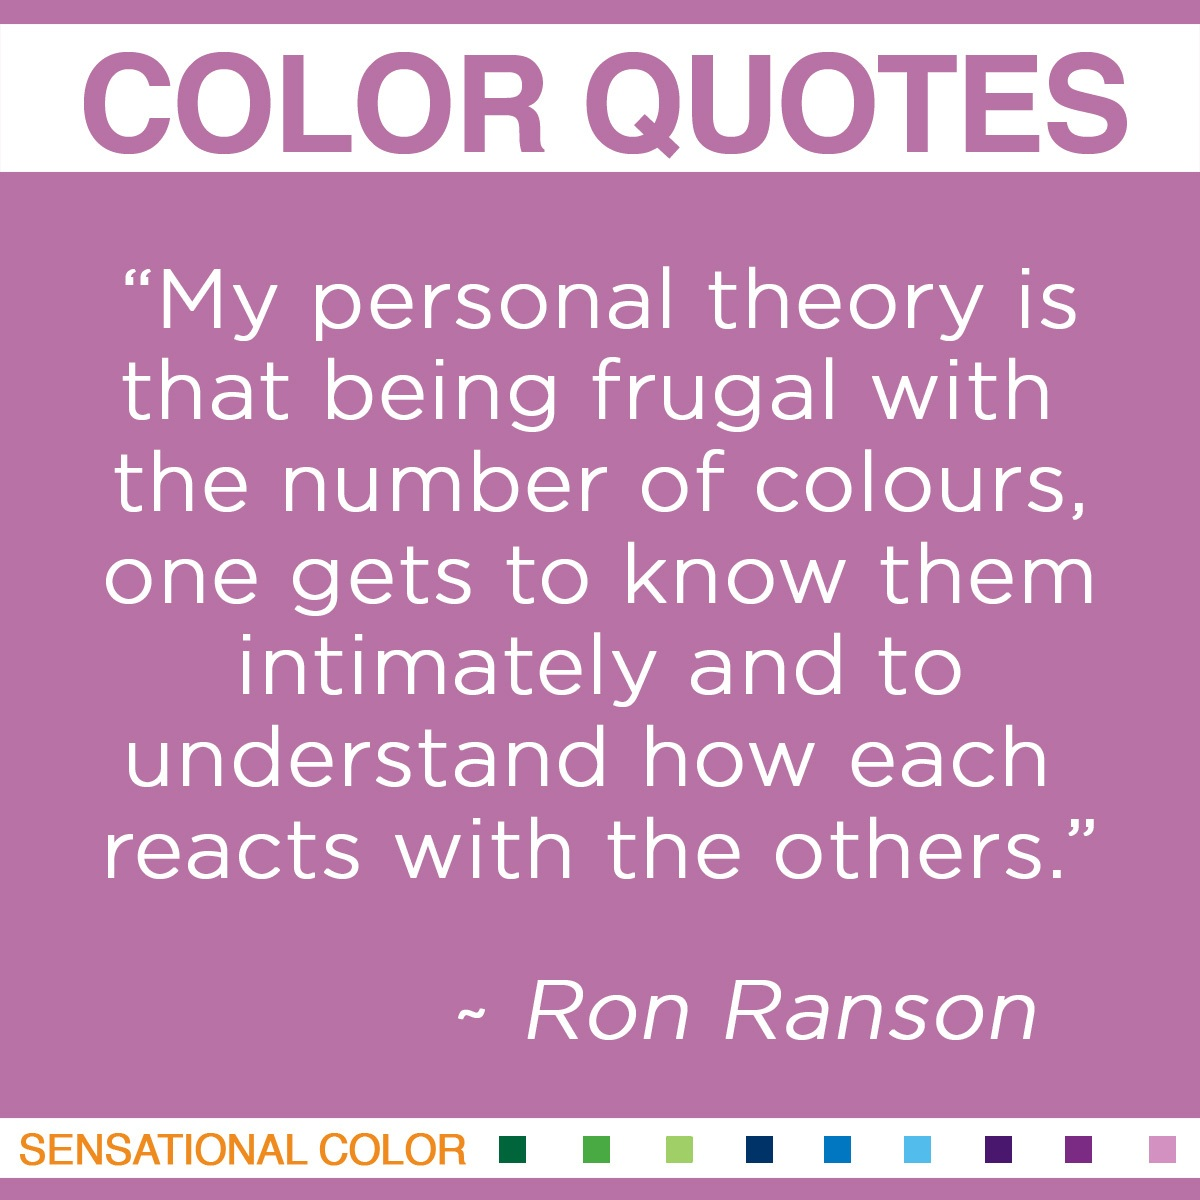 """My personal theory is that being frugal with the number of colours, one gets to know them intimately and to understand how each reacts with the others."" - Ron Ranson"